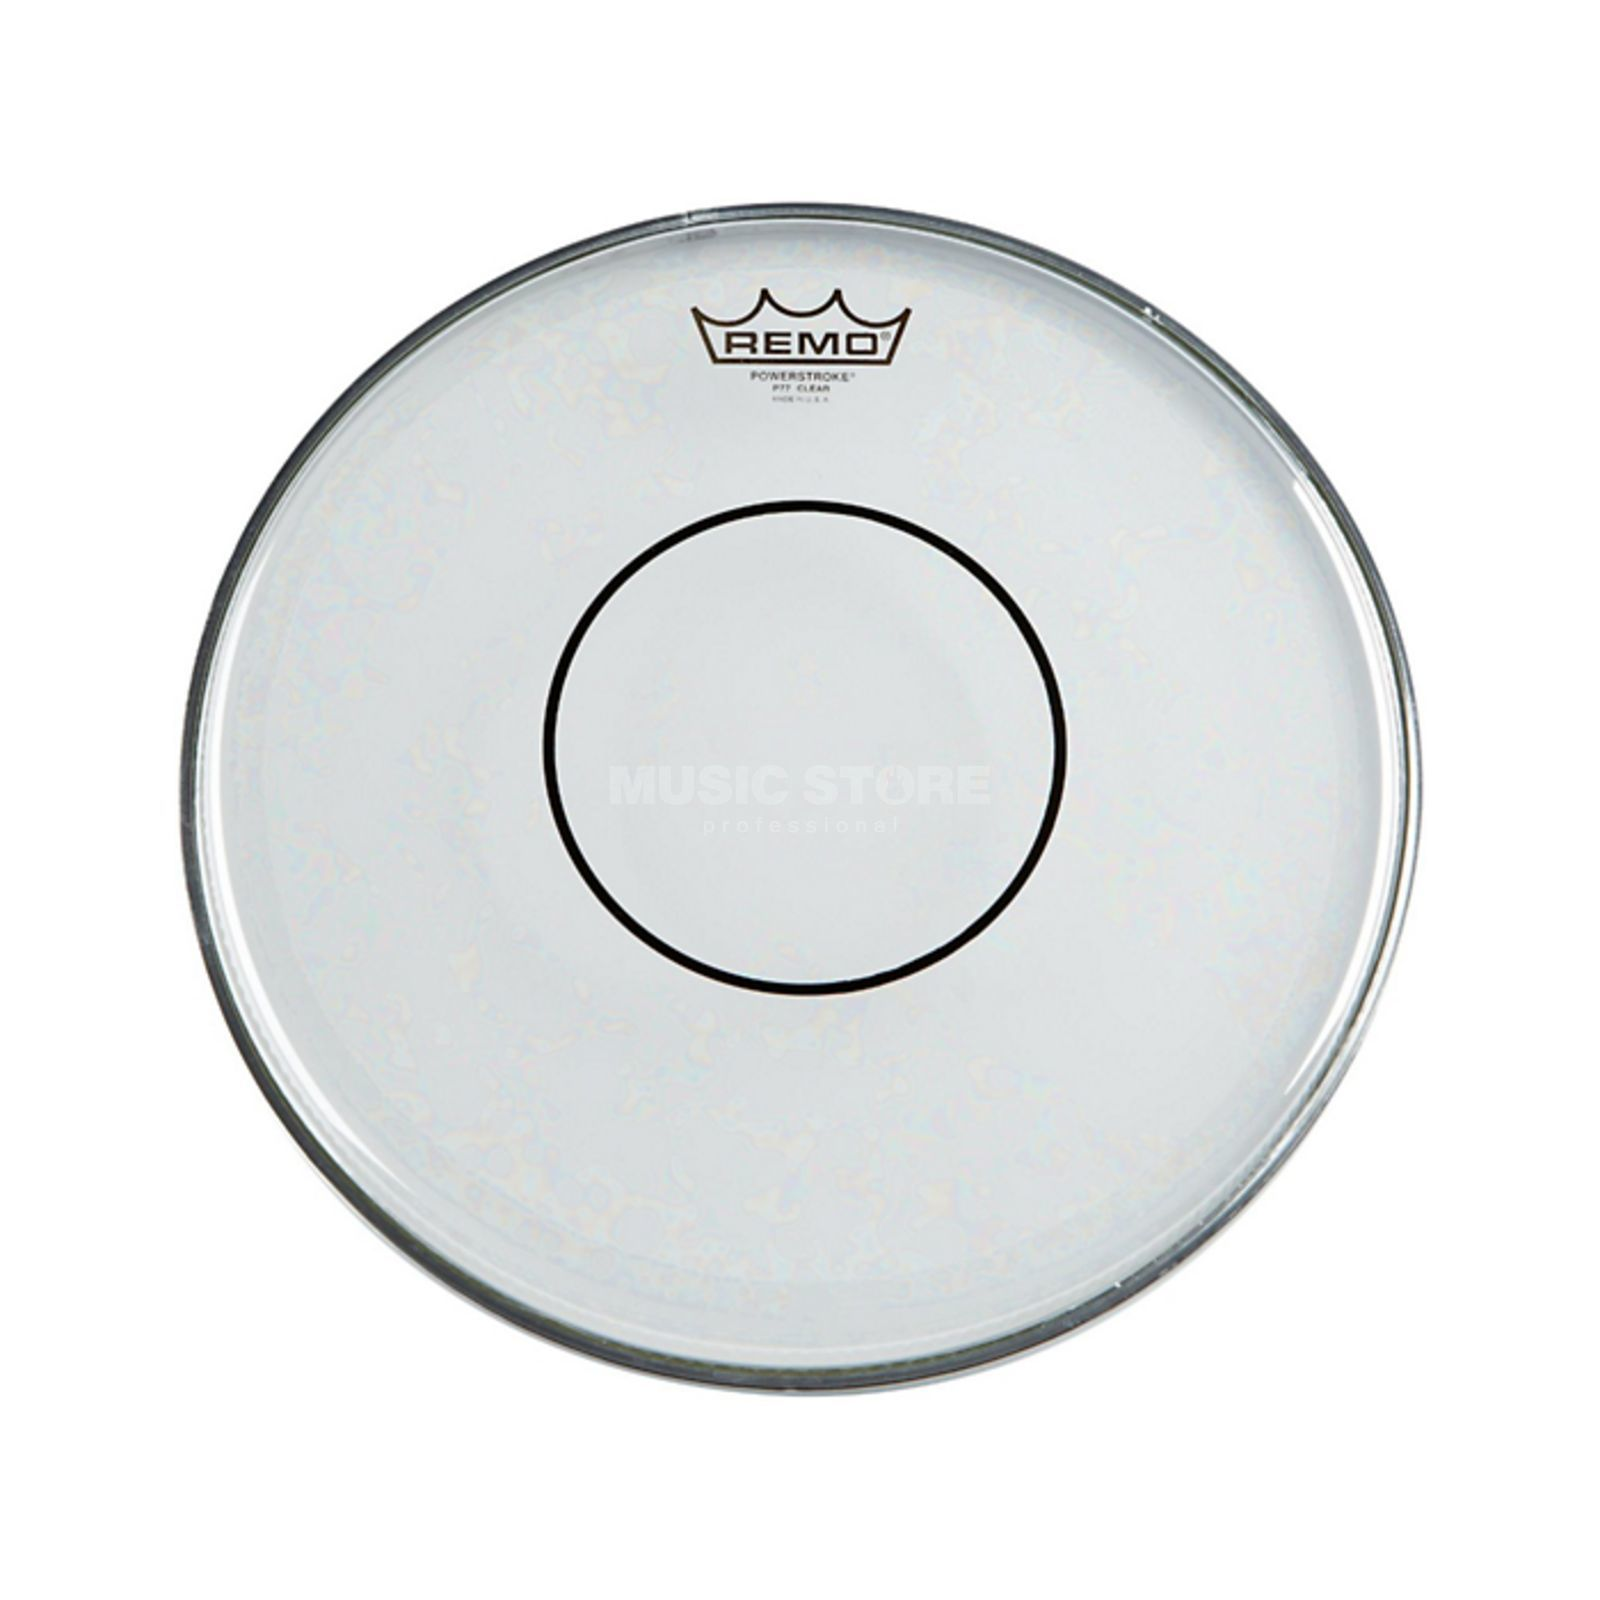 "Remo Powerstroke 77 Clear 14"", Dot, Tom + Snare Batter Produktbild"